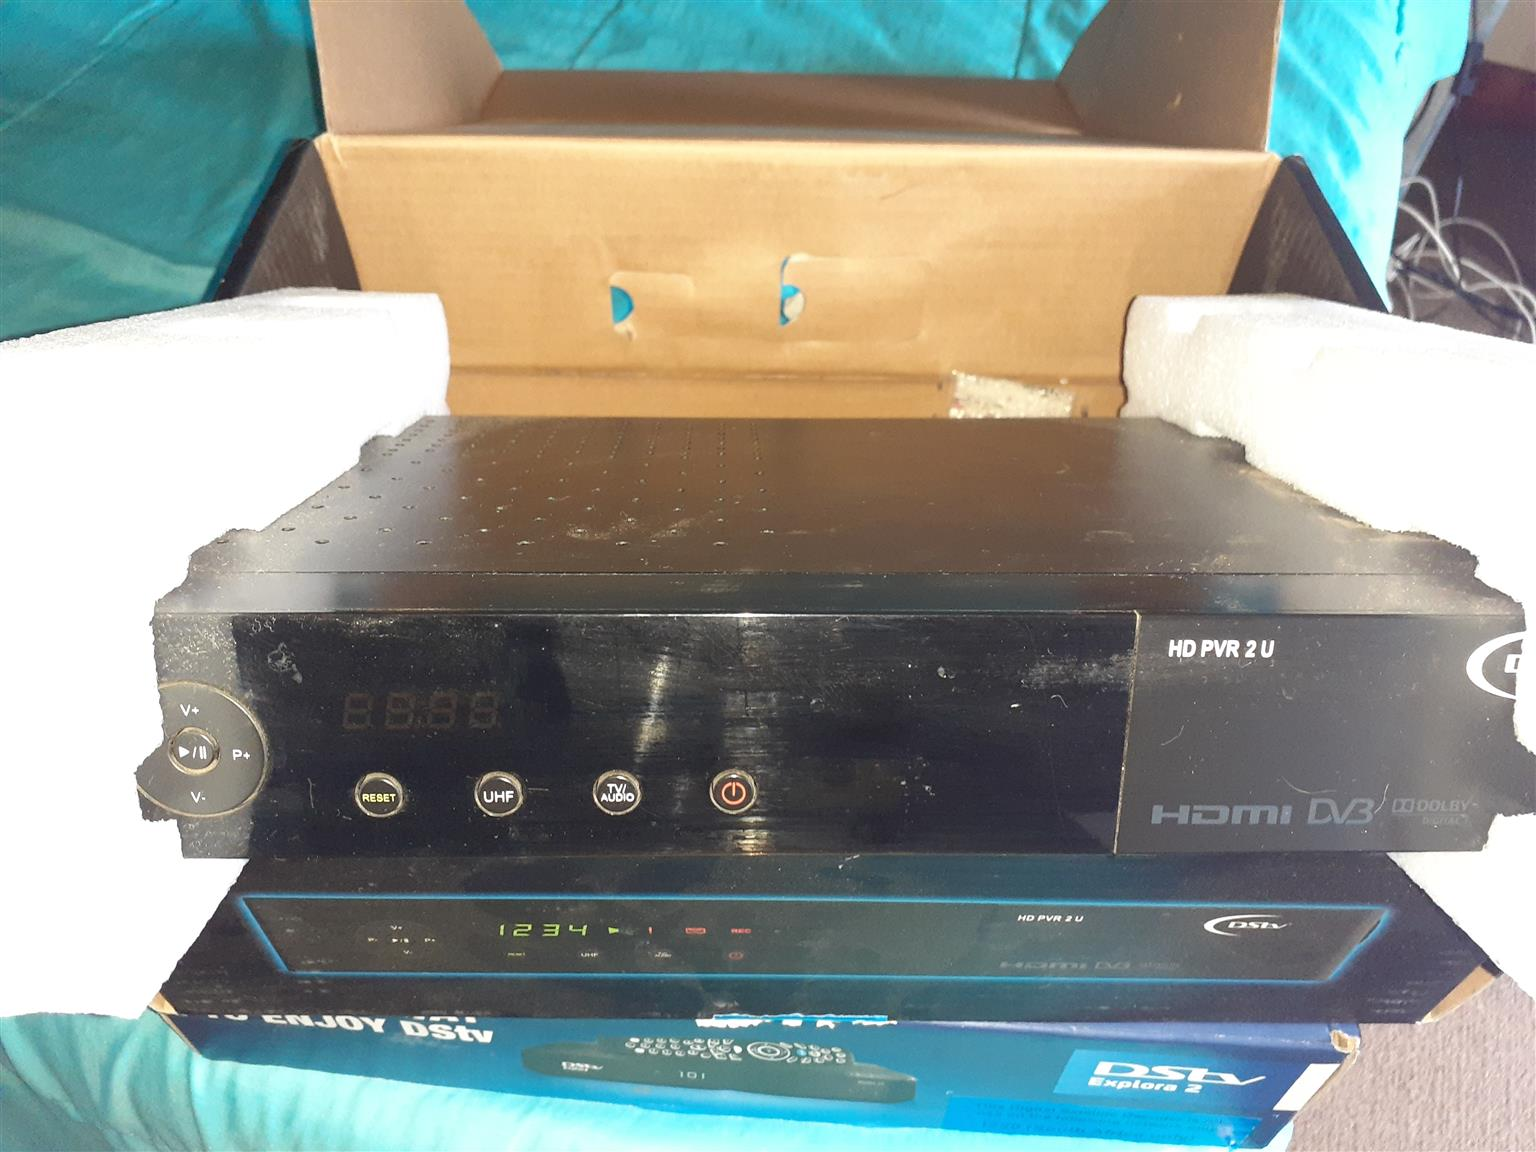 HD pvr 2 and pvr for sale